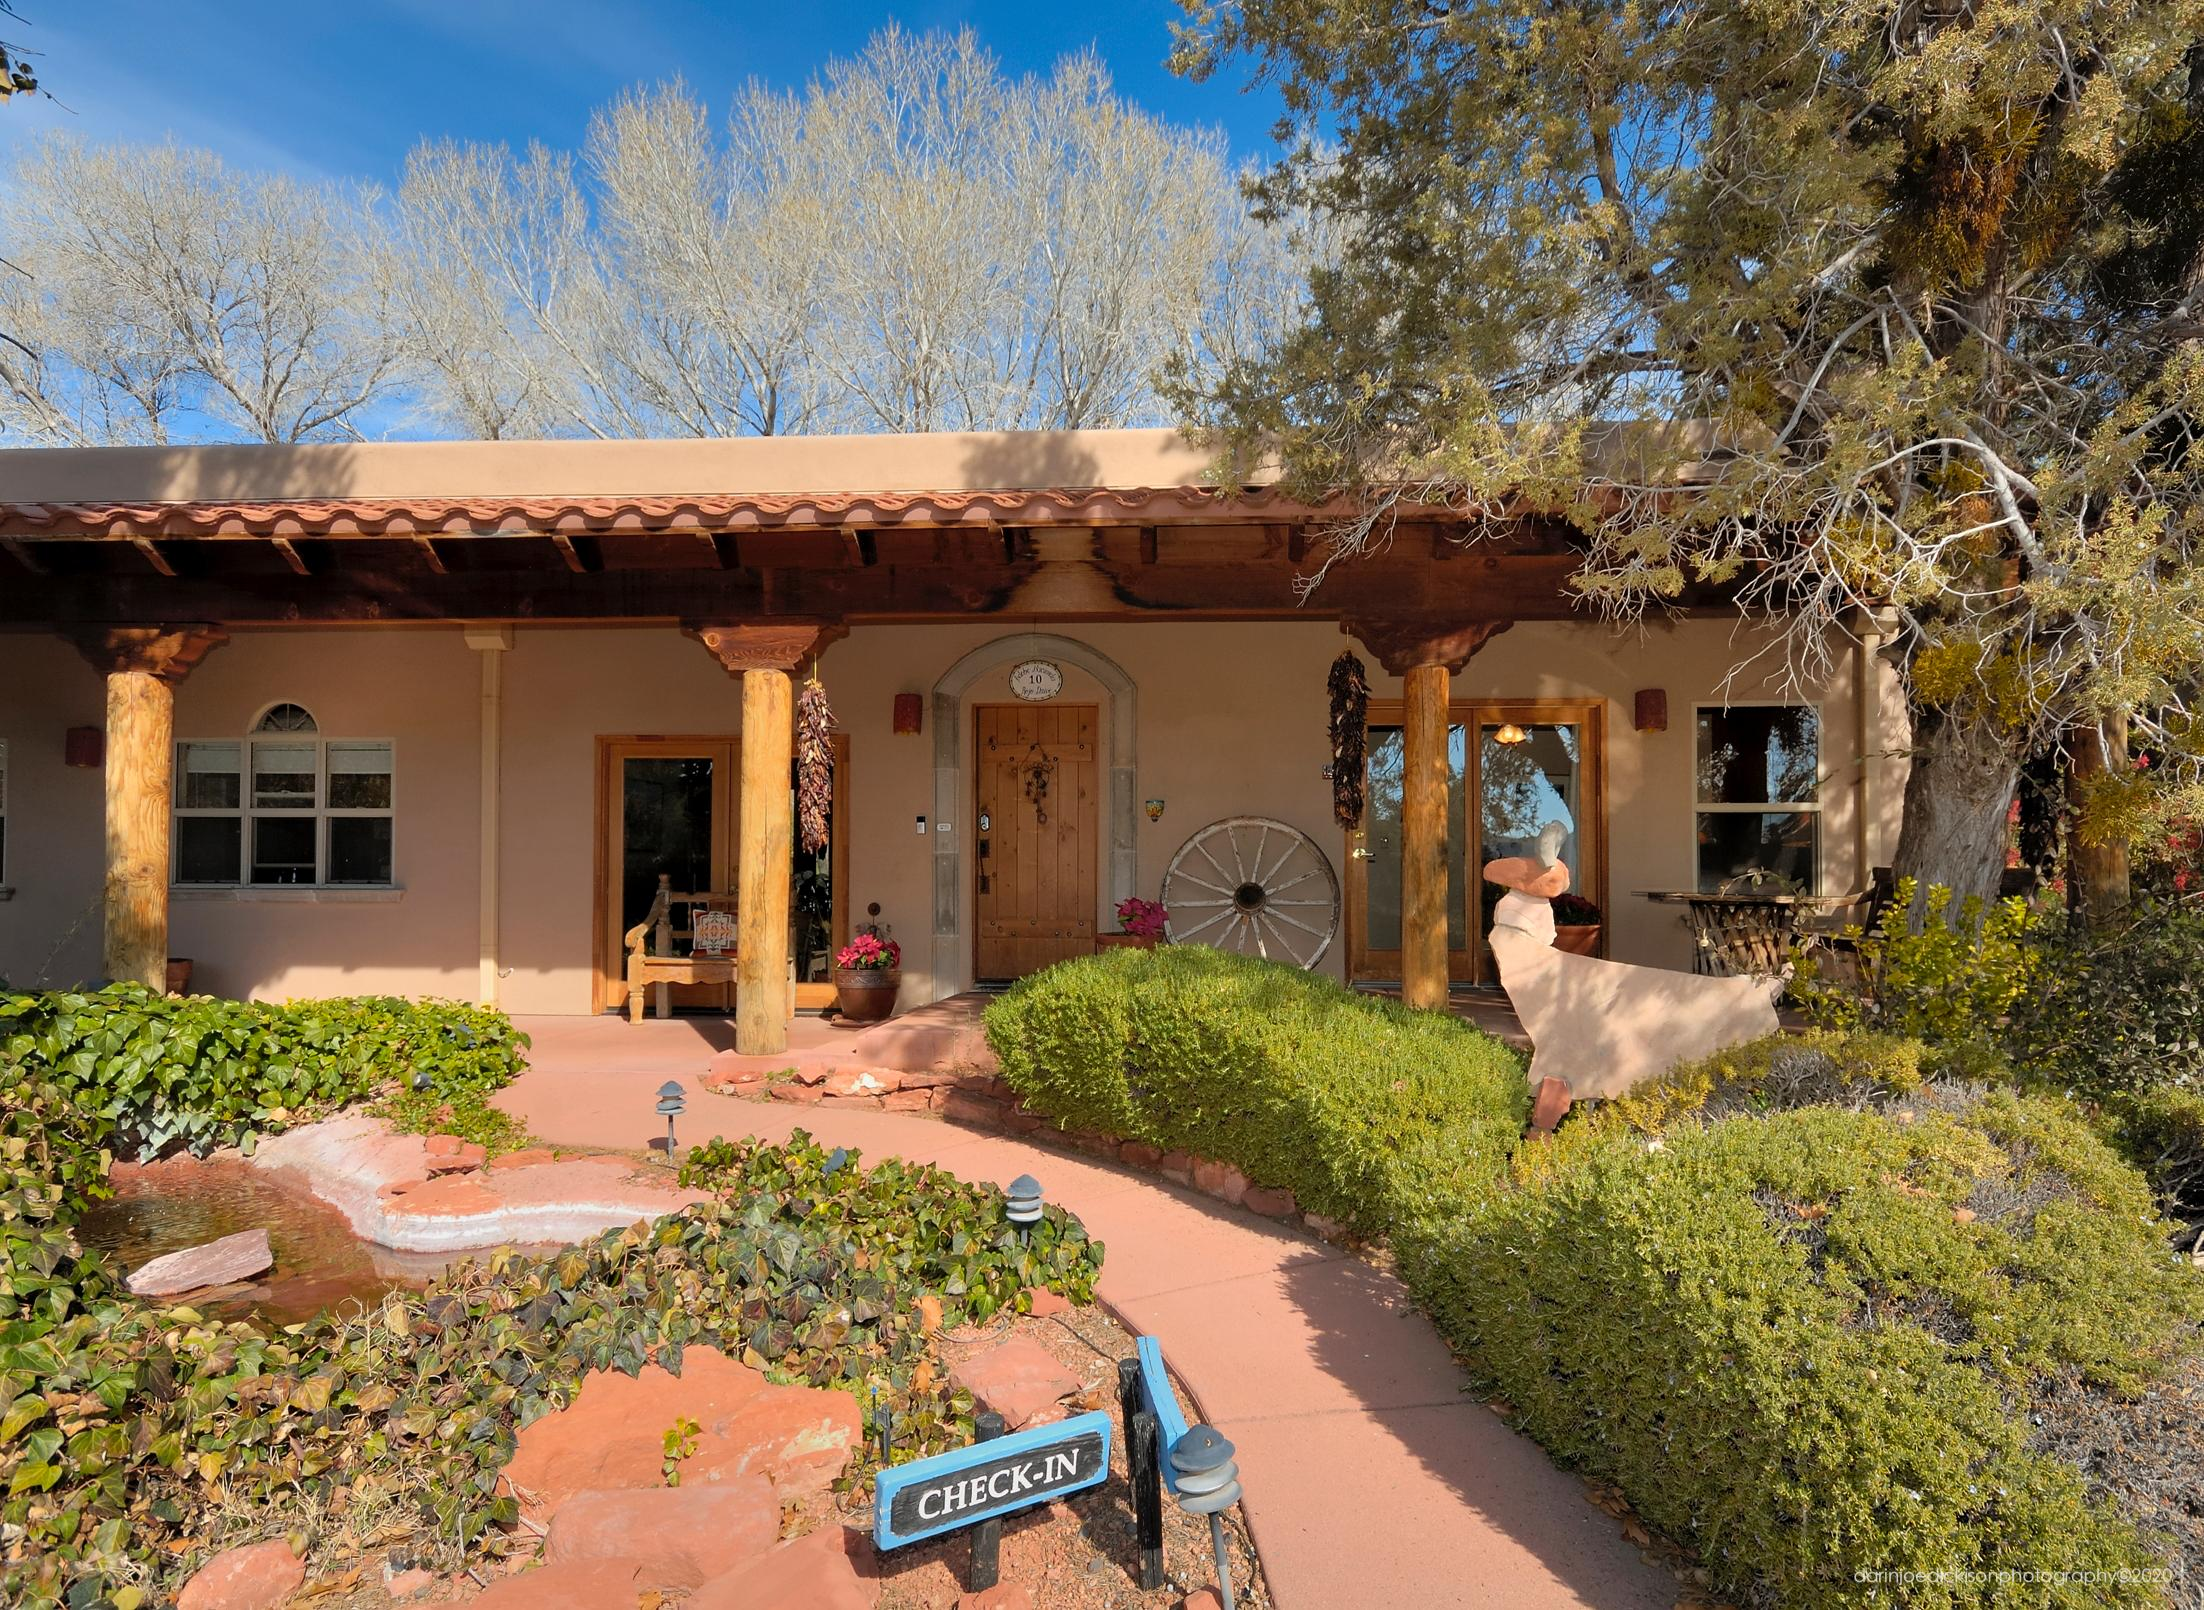 GREAT FOR RETREATS & FAMILY REUNIONS! ADOBE HACIENDA BED & BREAKFAST